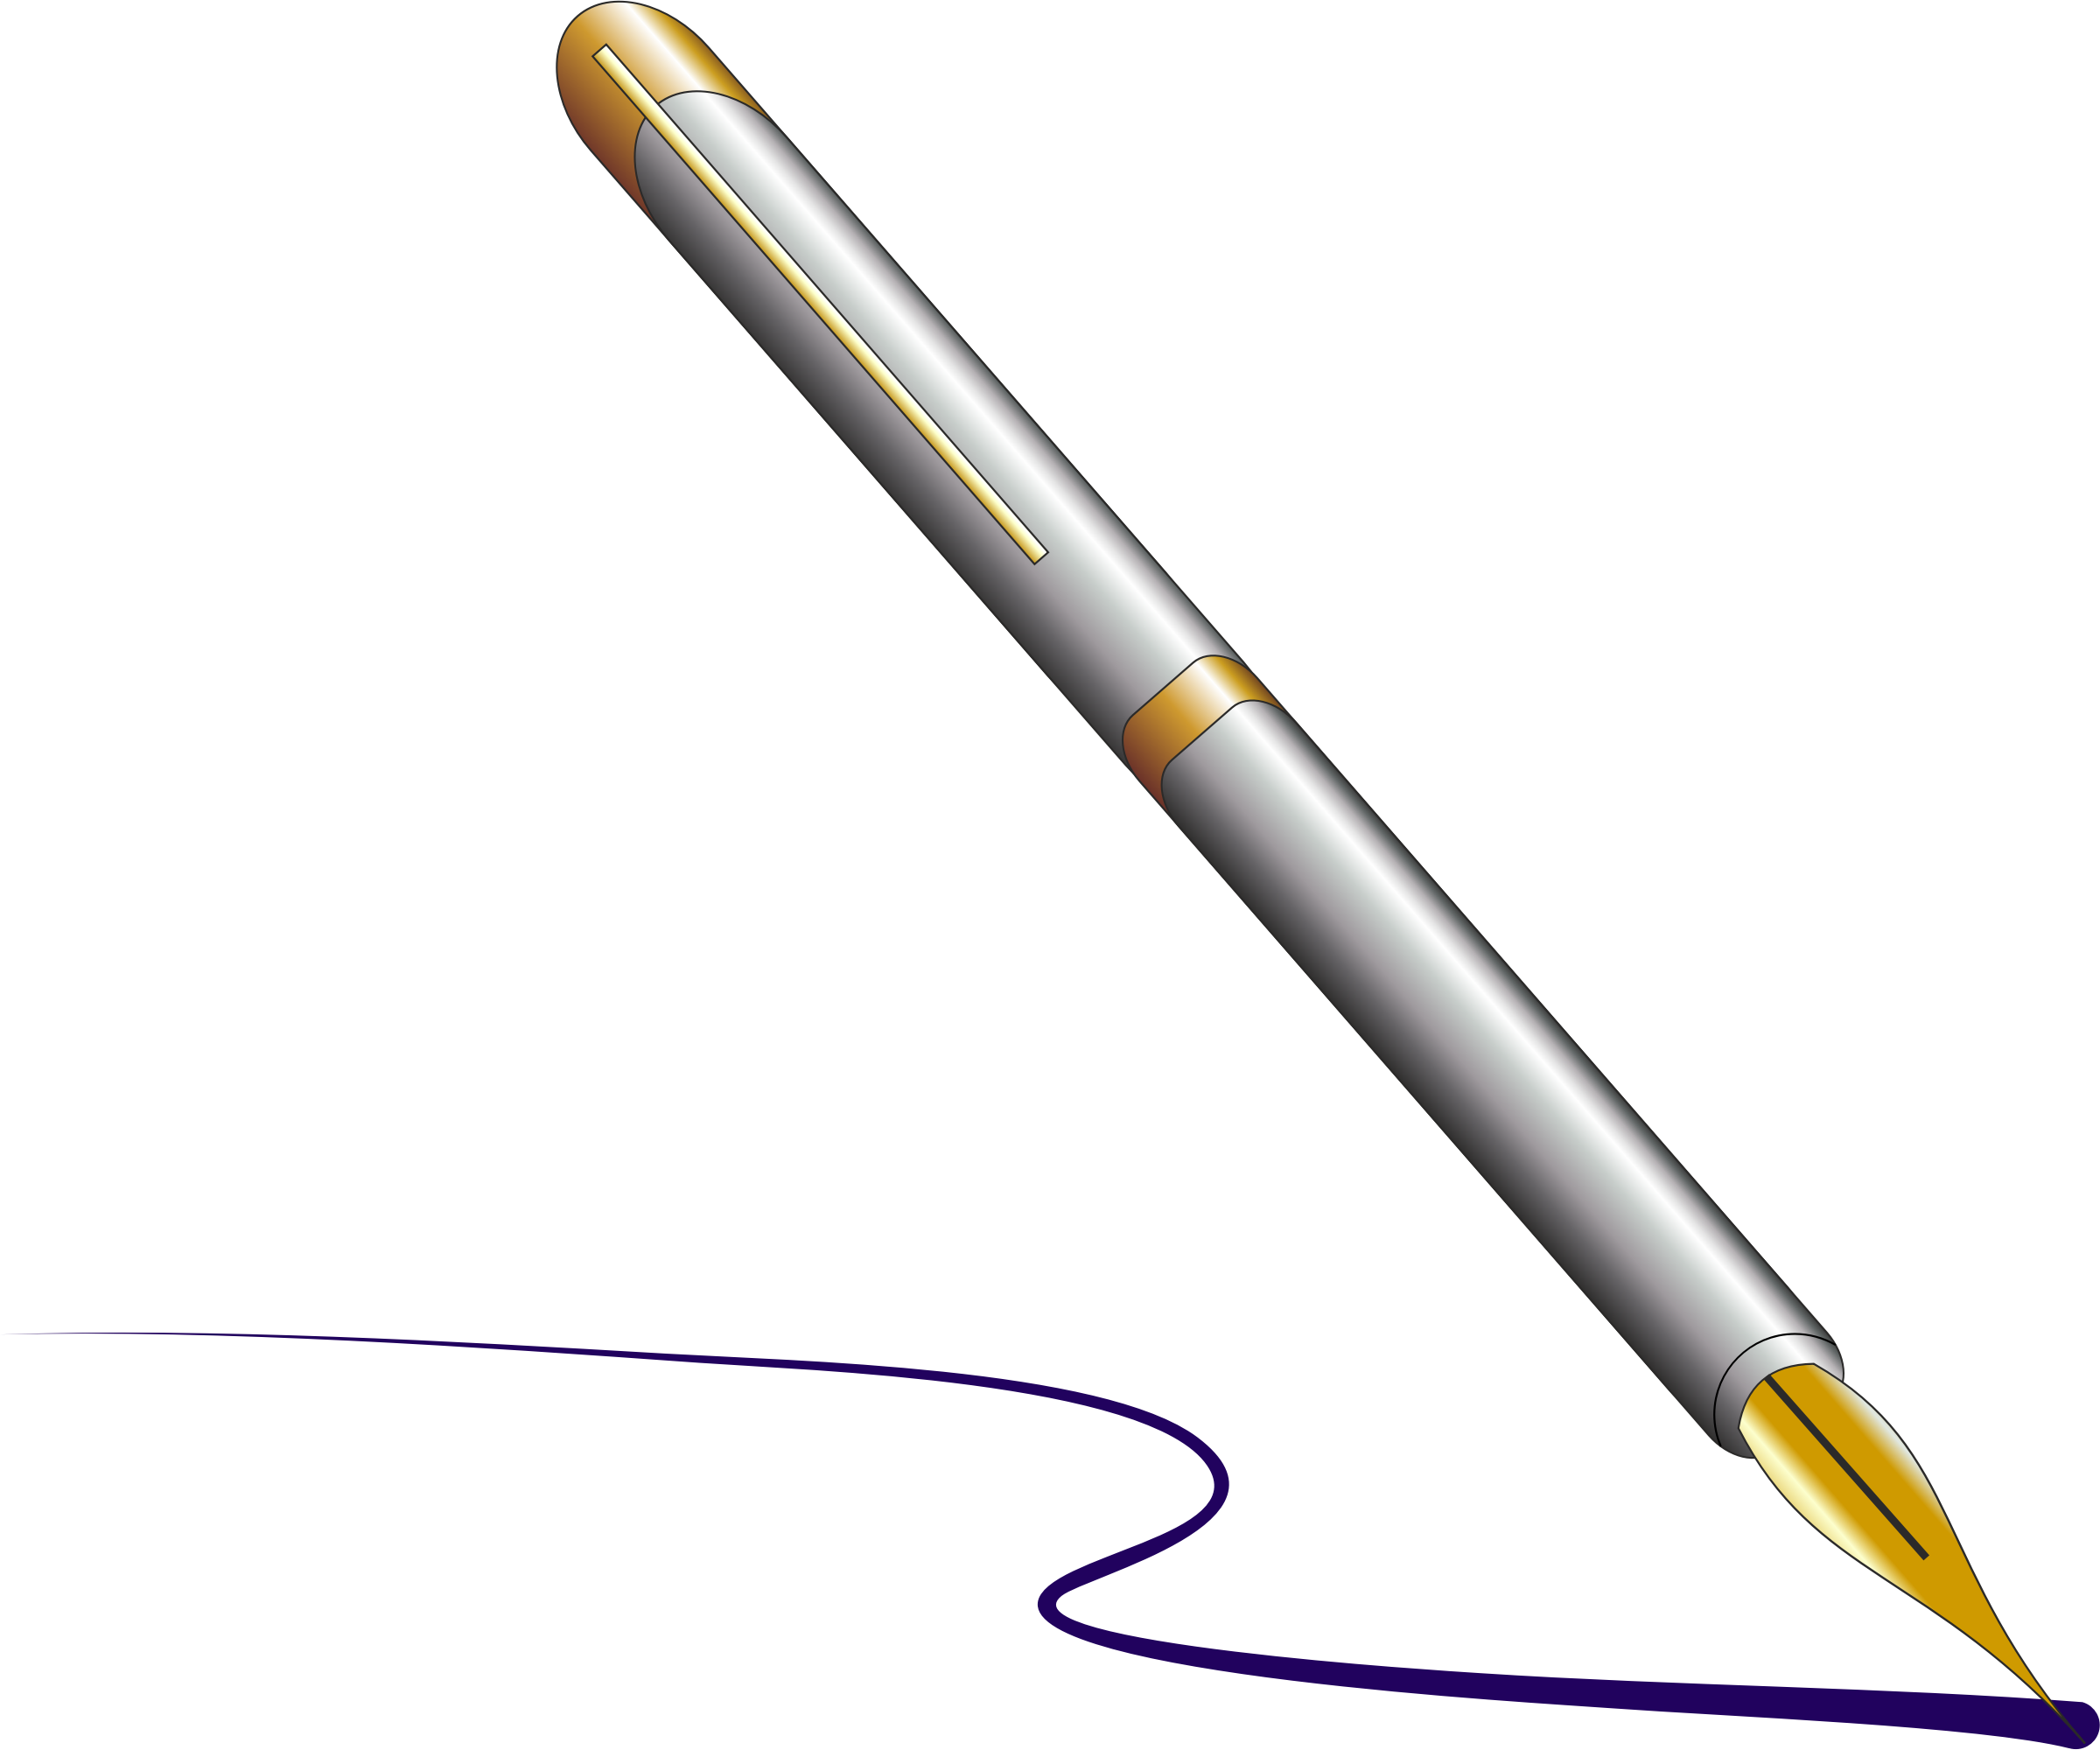 Pen PNG Transparent Image